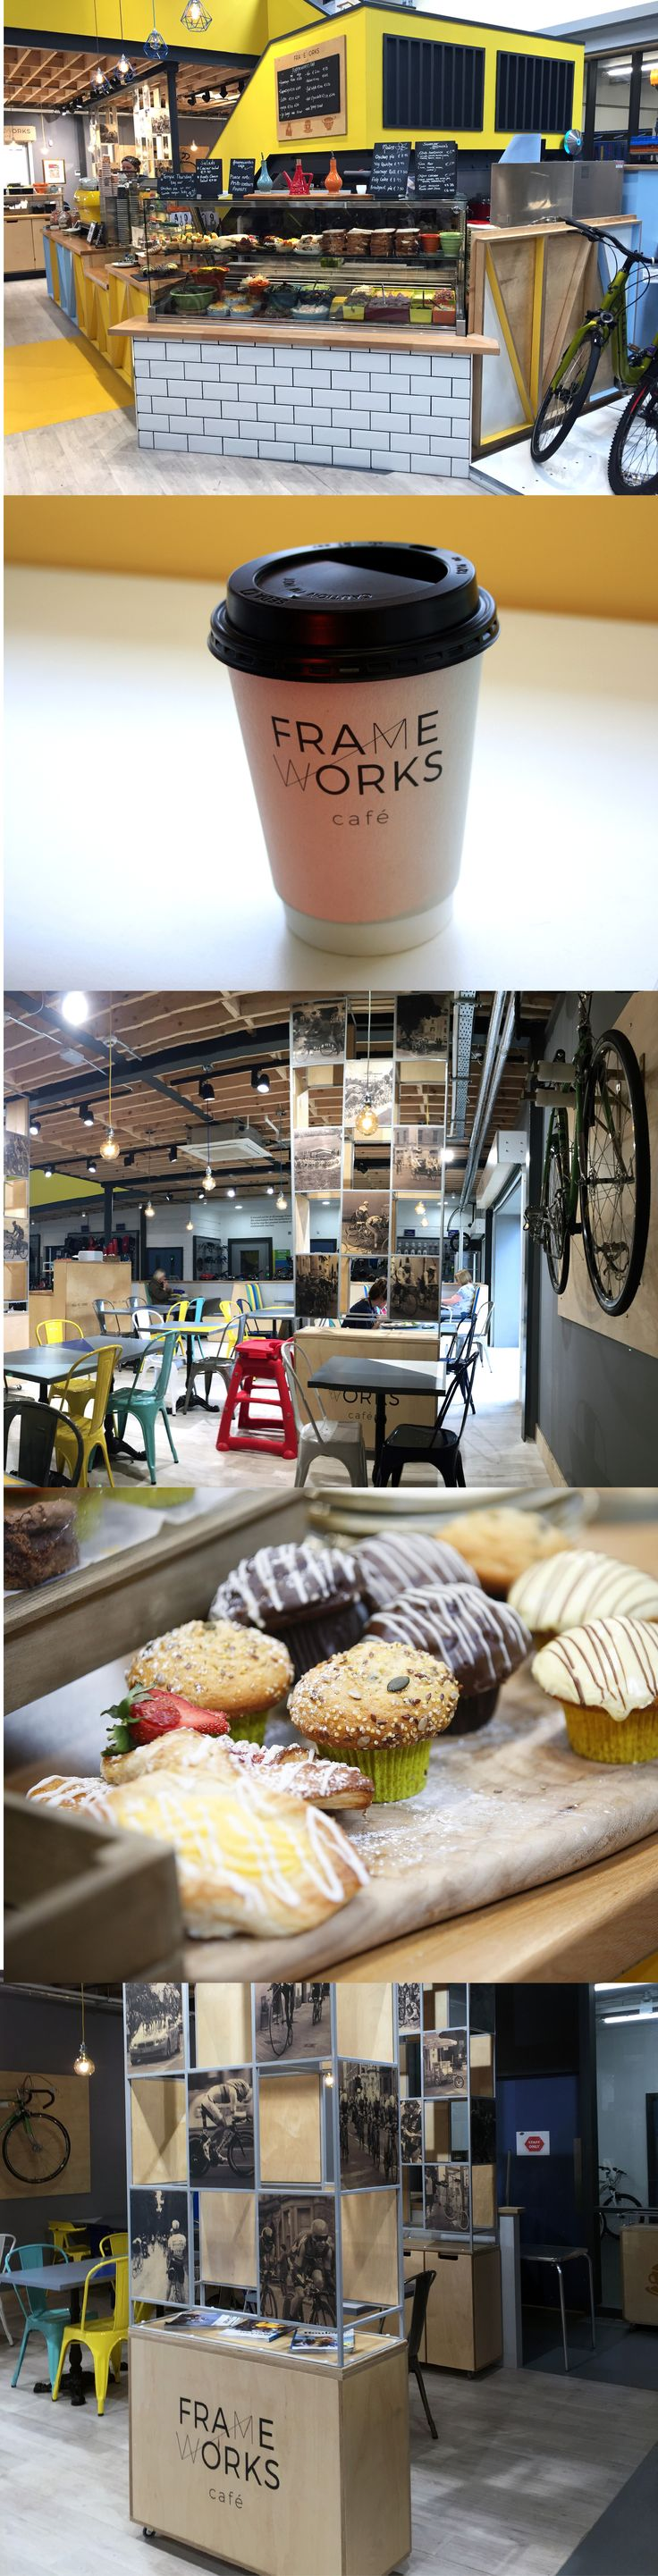 The Frameworks Café brand and interior was created by Exhibit Design for the café in Kay's Cycle Superstore, Tallaght. While creating the logo, brand and interior we were strongly influenced by geometric shapes, modular structures and bicycle parts. As part of the design process we looked at existing bicycle cafés and related industries.